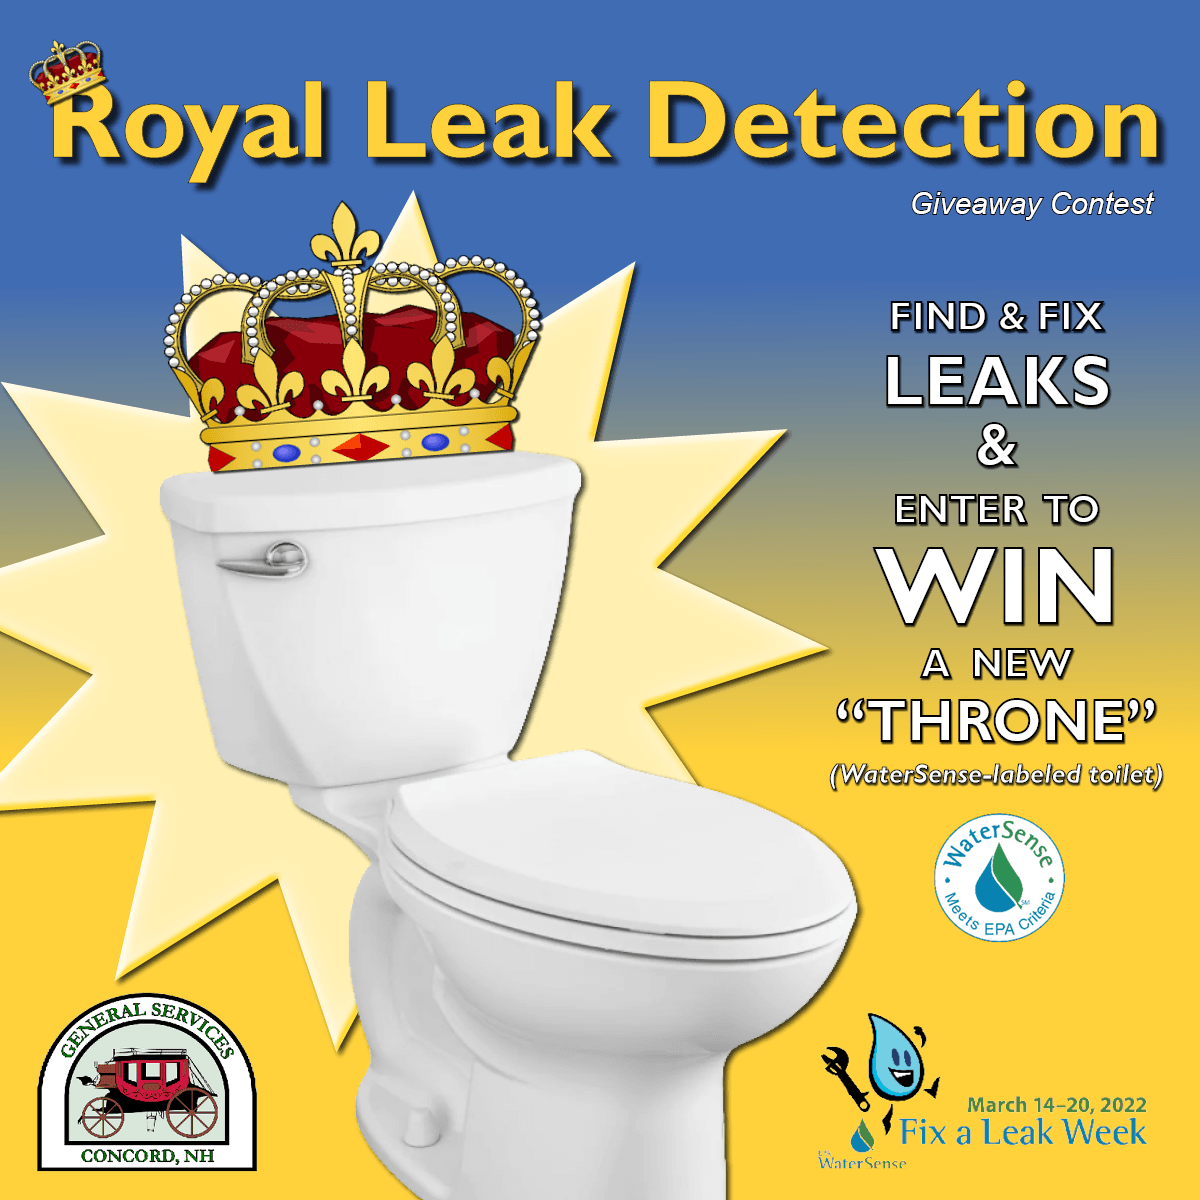 2019 Royal Leak Detection